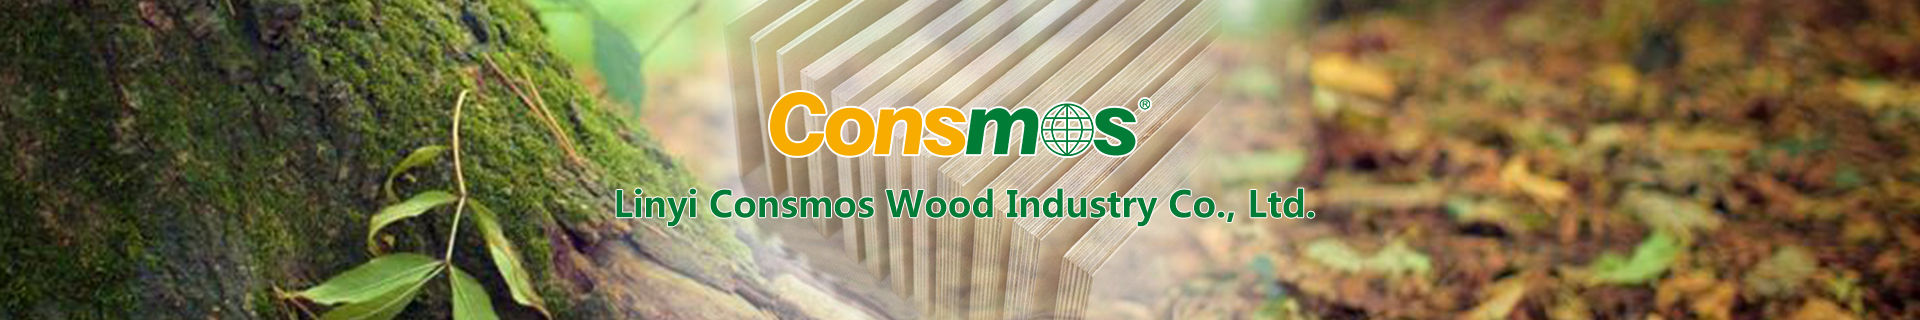 Consmos Professional In Supplying Wood Based Panel Products